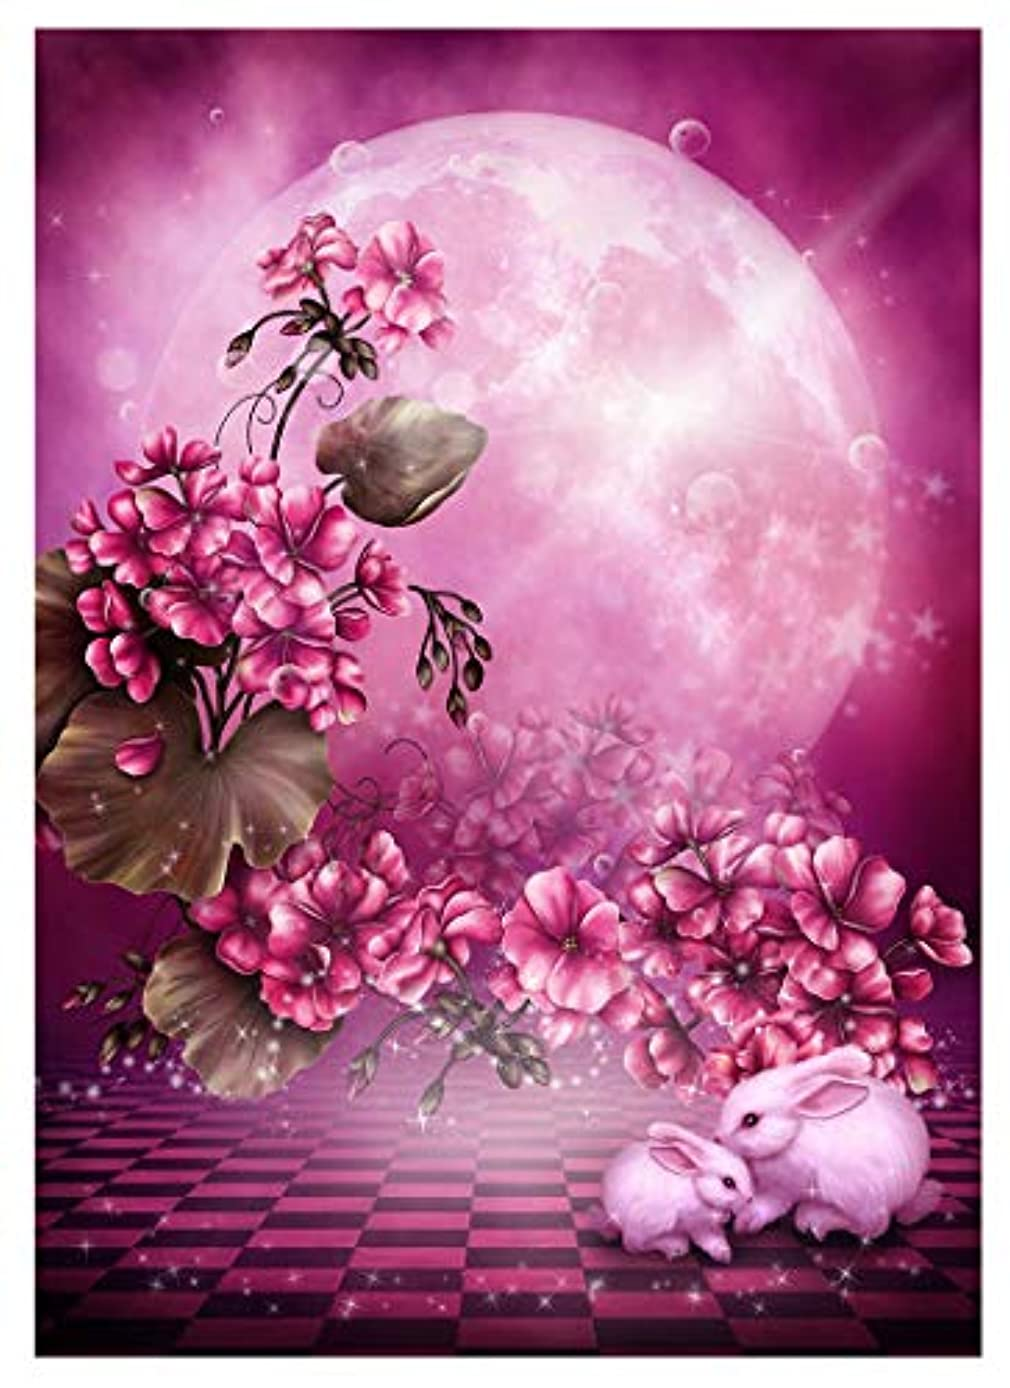 Twuky 5D Diamond Painting Kits Full Drill Diamond Embroidery-Home Decoration Process-Moon and Rabbit(12X16inch/30X40CM)